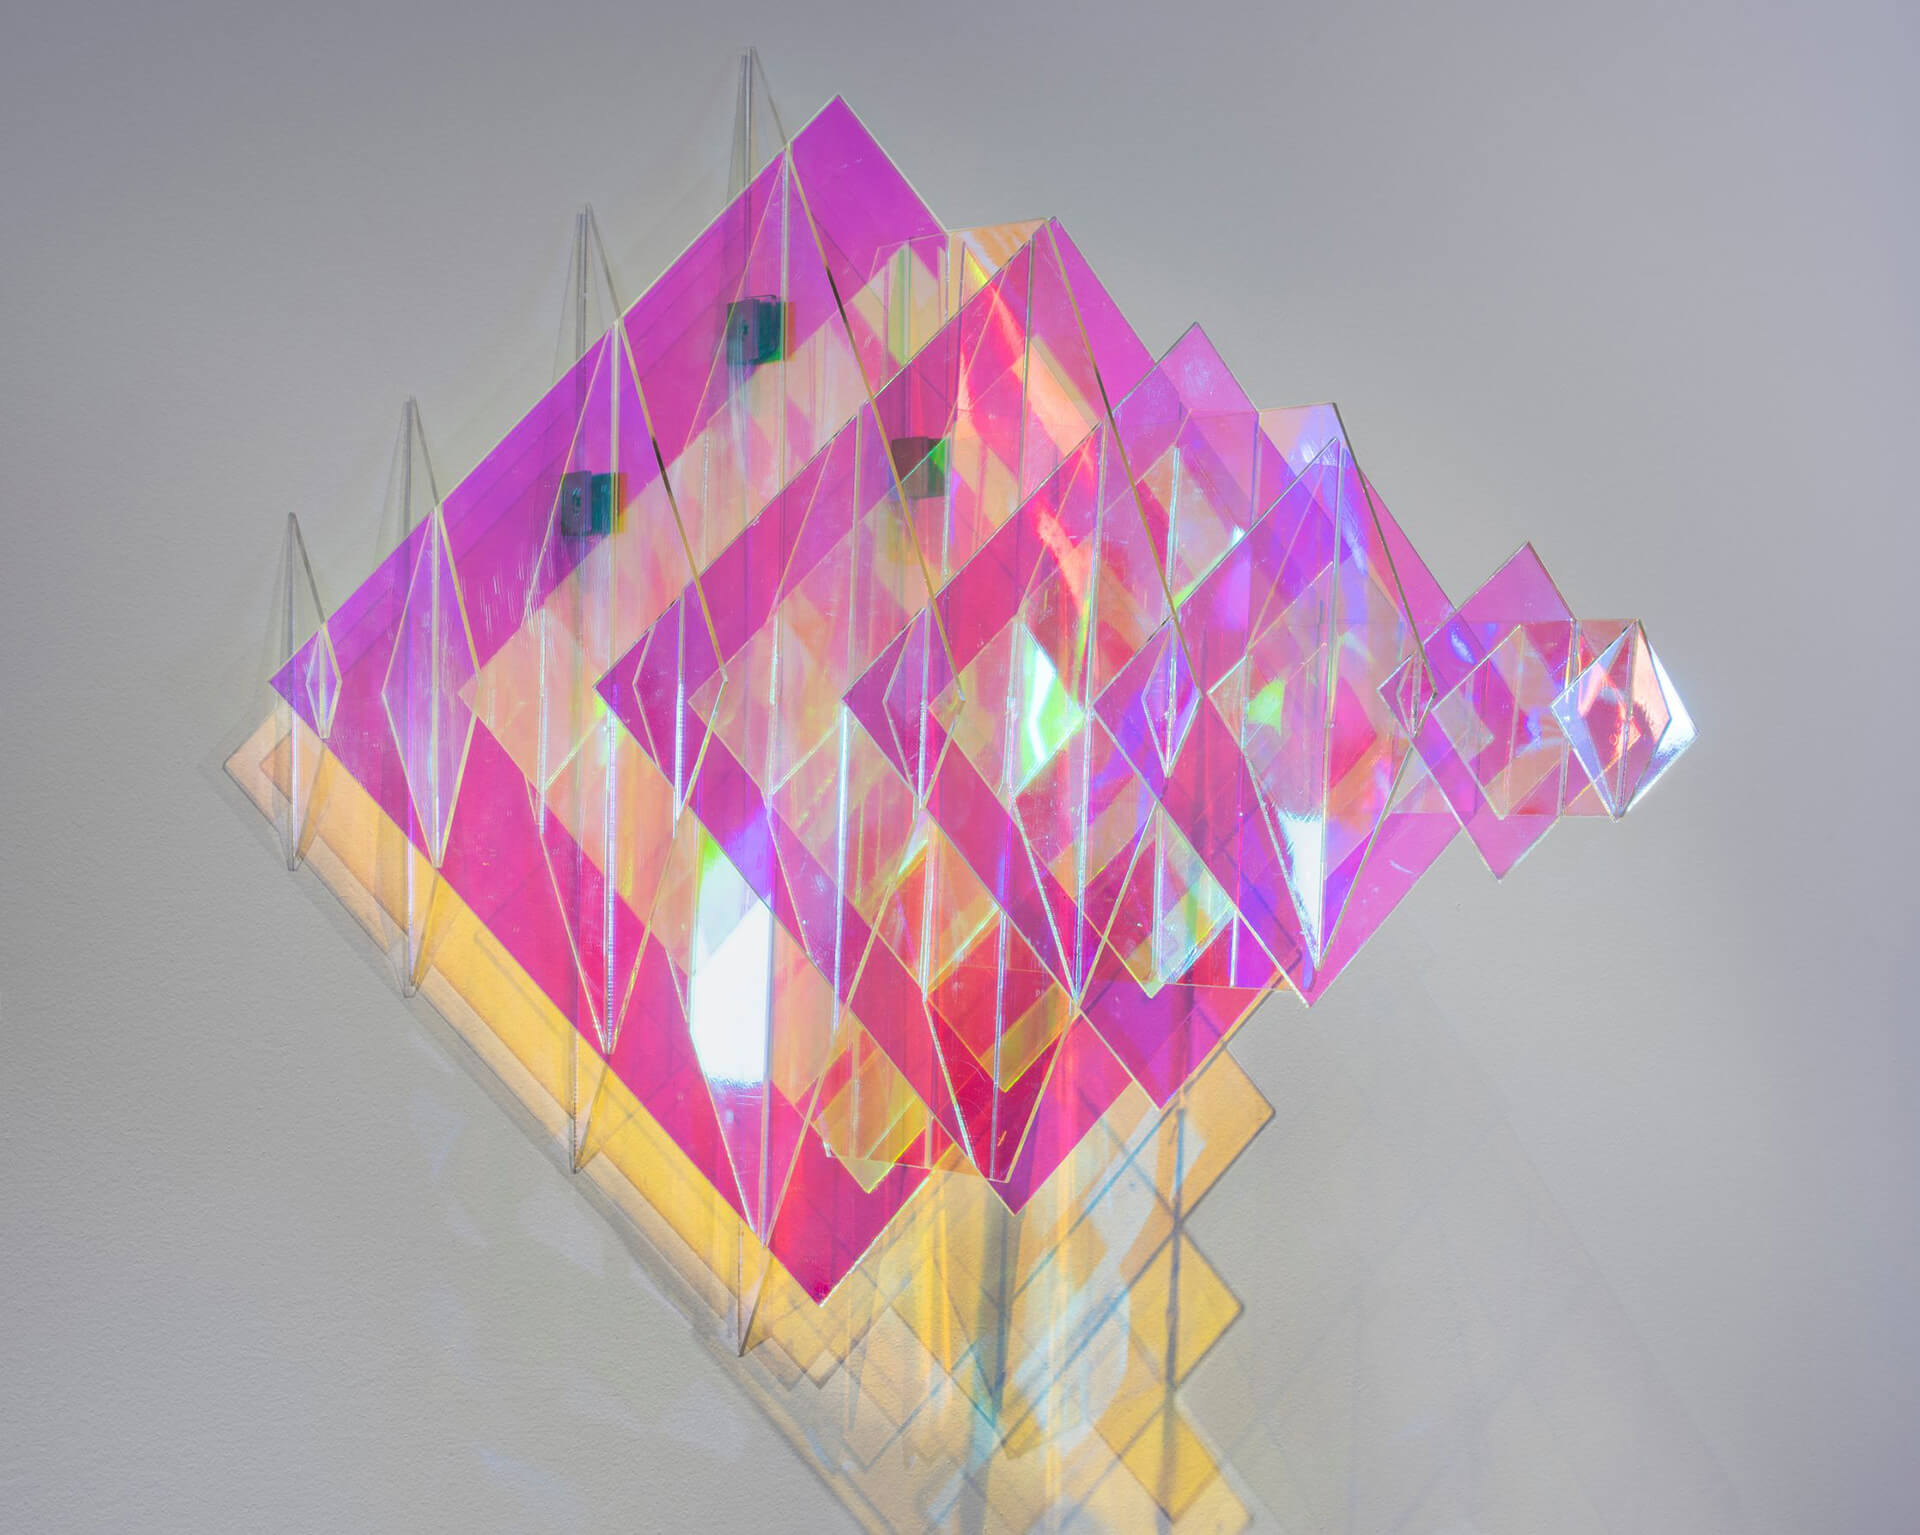 Another artwork from 'Subjective Structures' by Chamo, which engages the viewer's perception of colour and light | Sheer Appearances | Barak Chamo| STIRworld